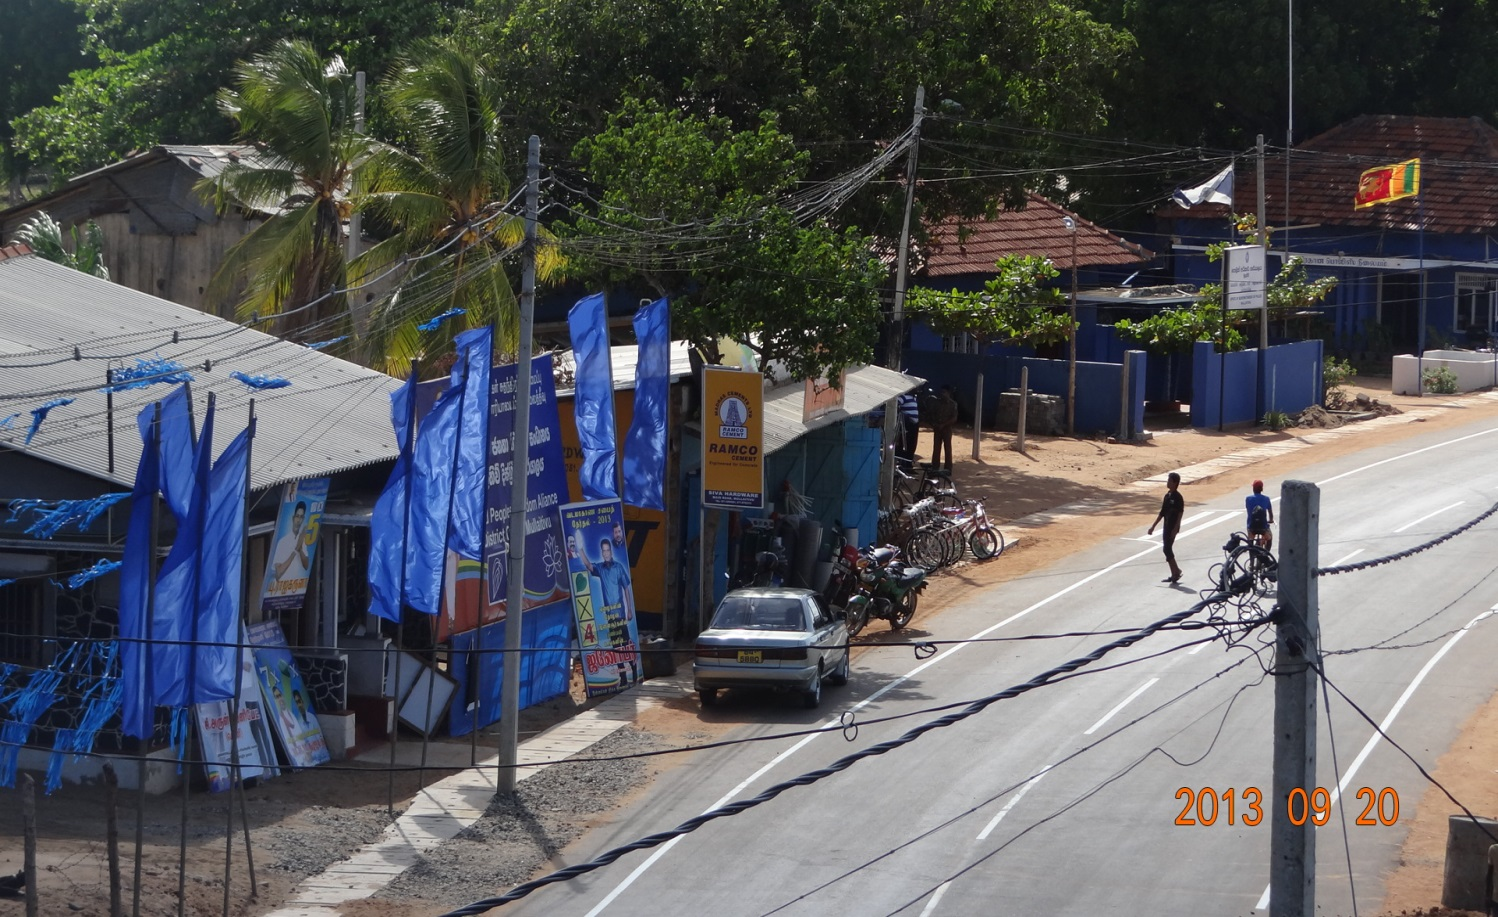 The blatant display of UPFA posters and cut-outs even on 20 Sep 2013, adjacent to the Mullaitivu SP Janaka Gunathilaka's office in the heart of the town.